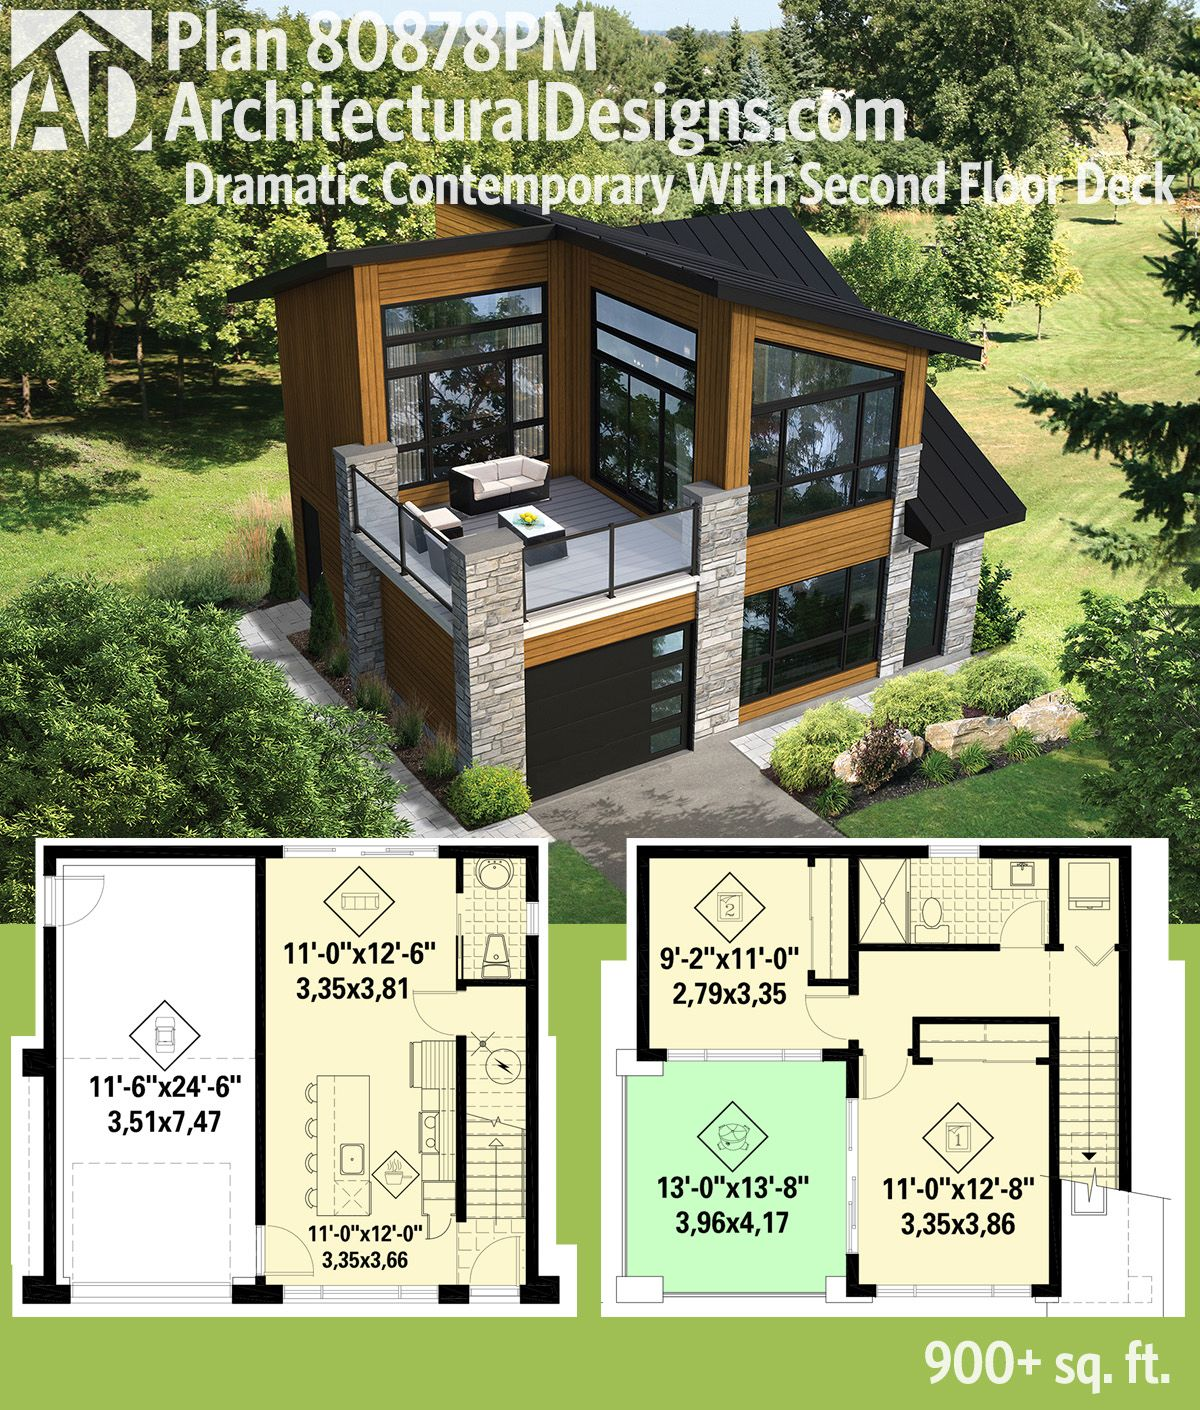 Container House   Get A Deck Over The Garage And Over 900 Square Feet Of  Living With Architectural Designs Modern House Plan This Is Very Appealing.